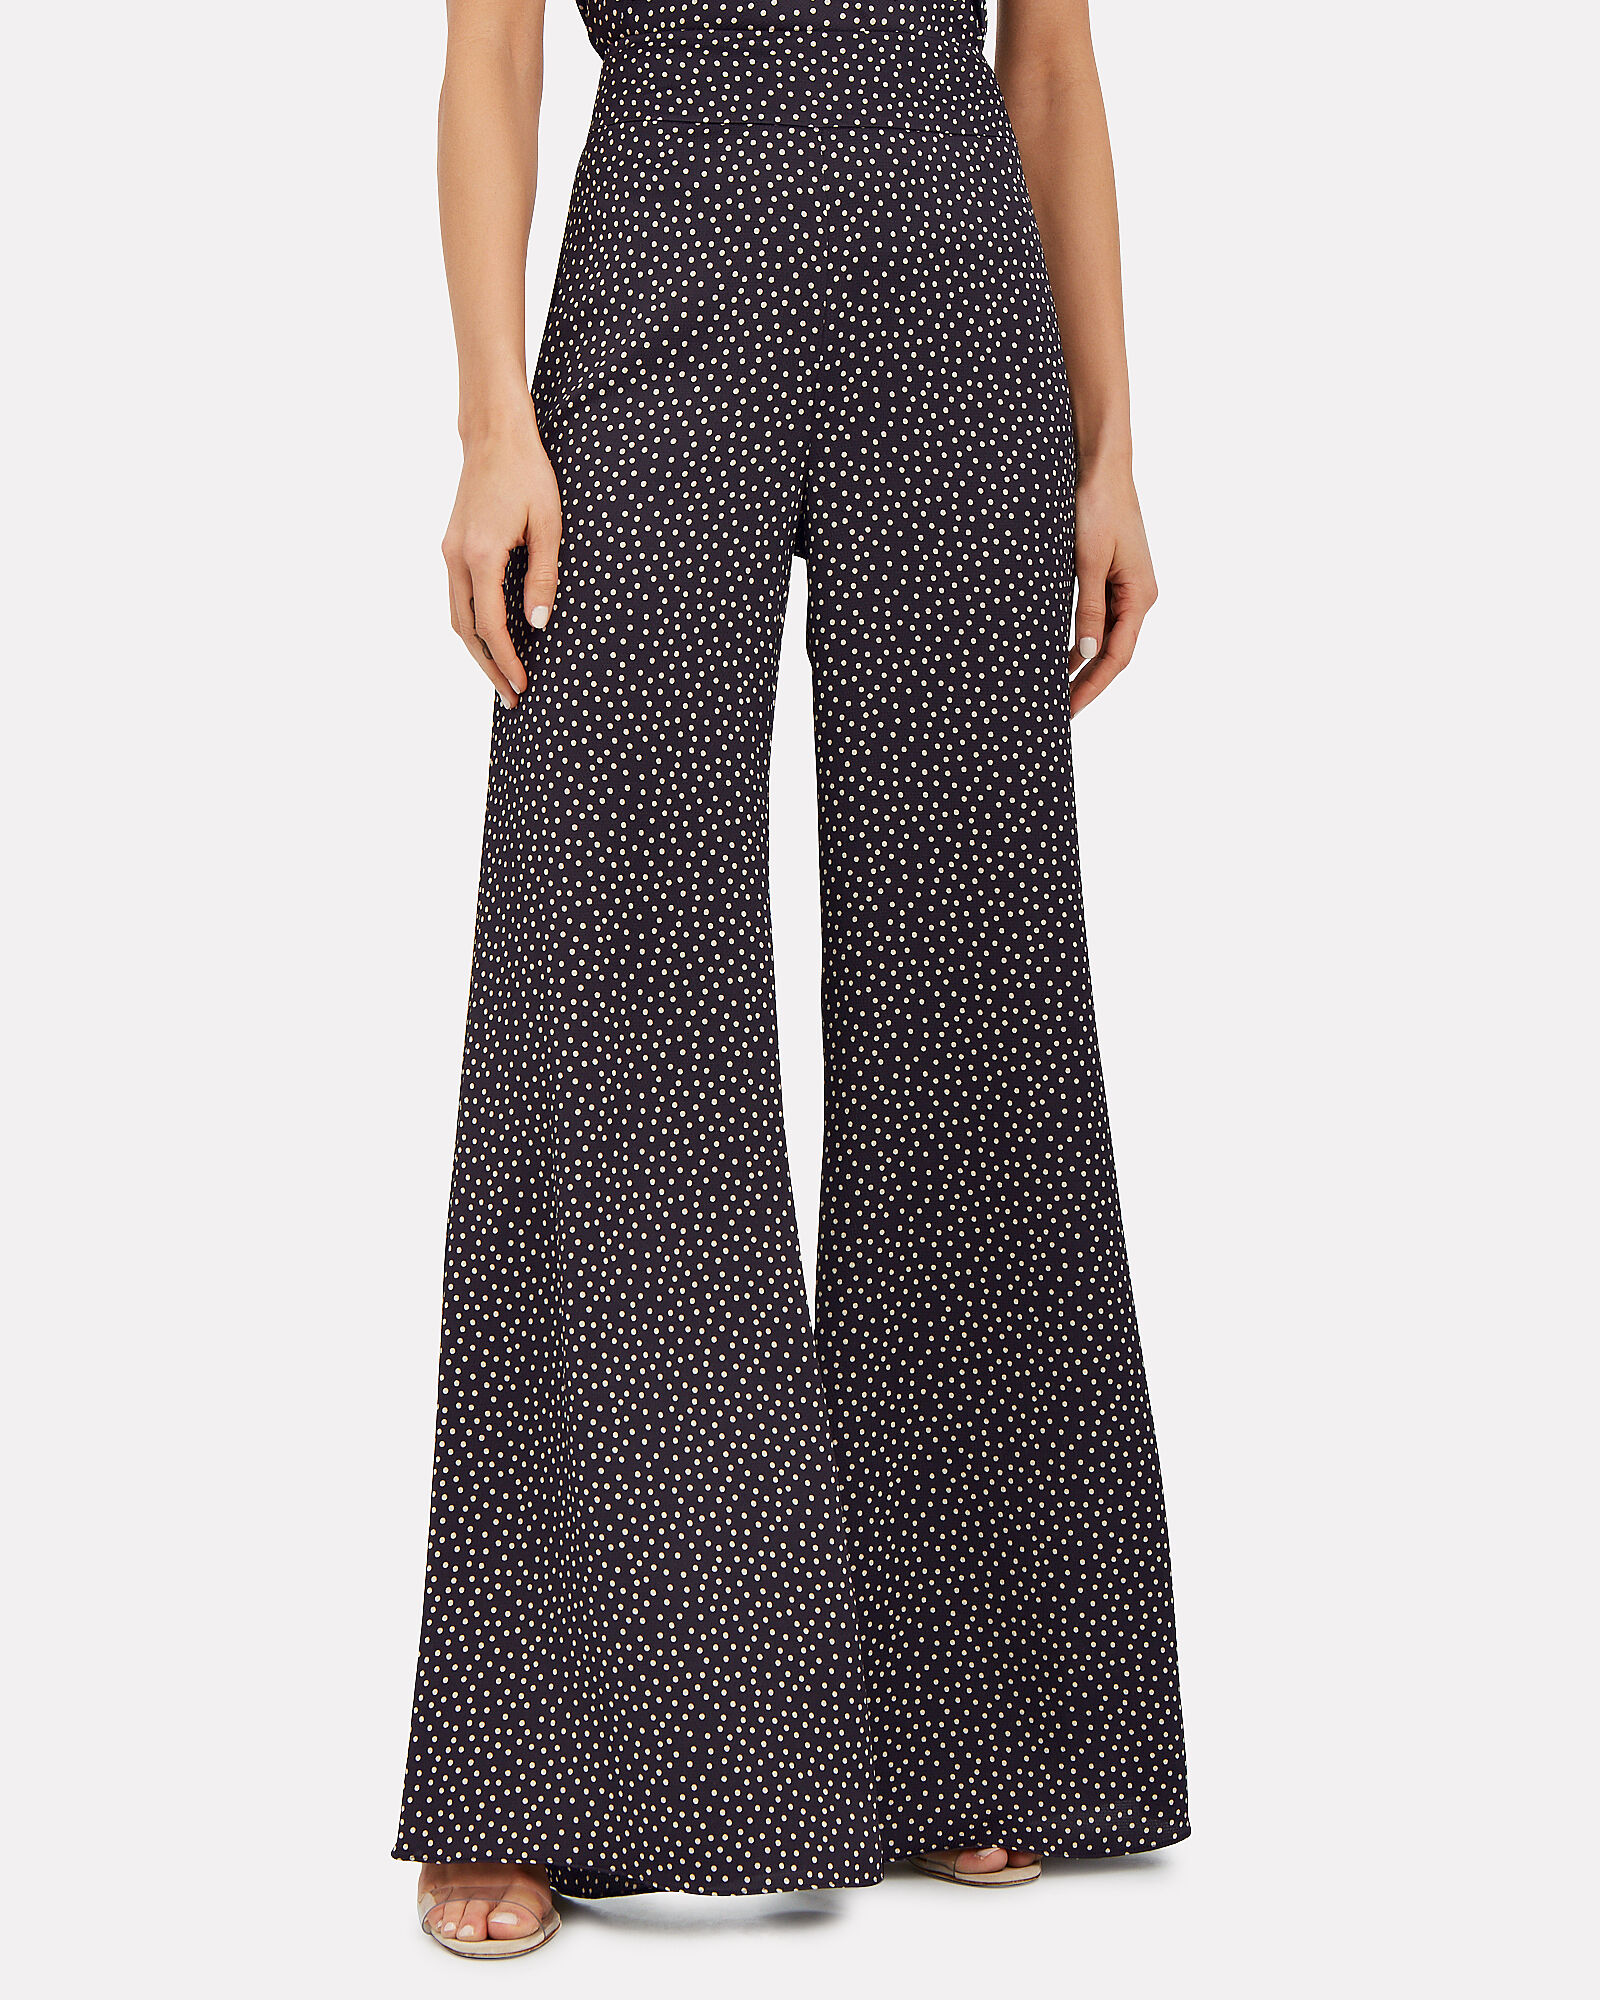 Minna Flared Polka Dot Trousers, NAVY/BEIGE, hi-res